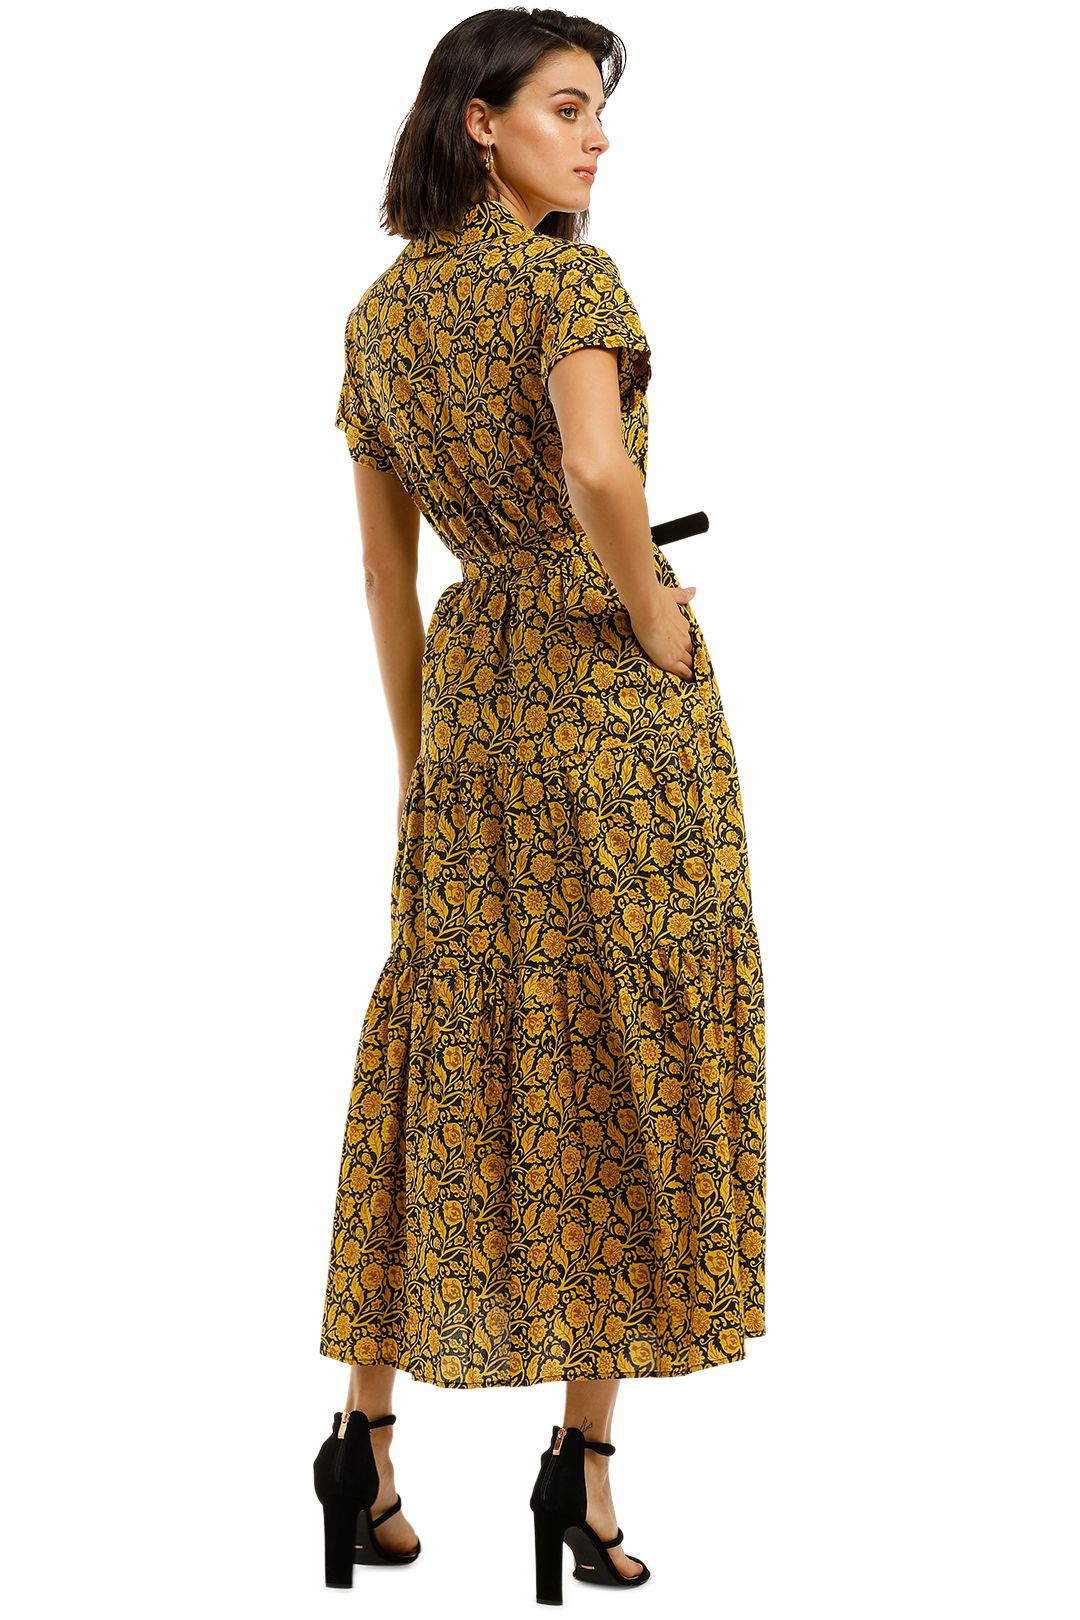 Nicholas-Amina-Dress-Confetti-Vine-Batik-Back